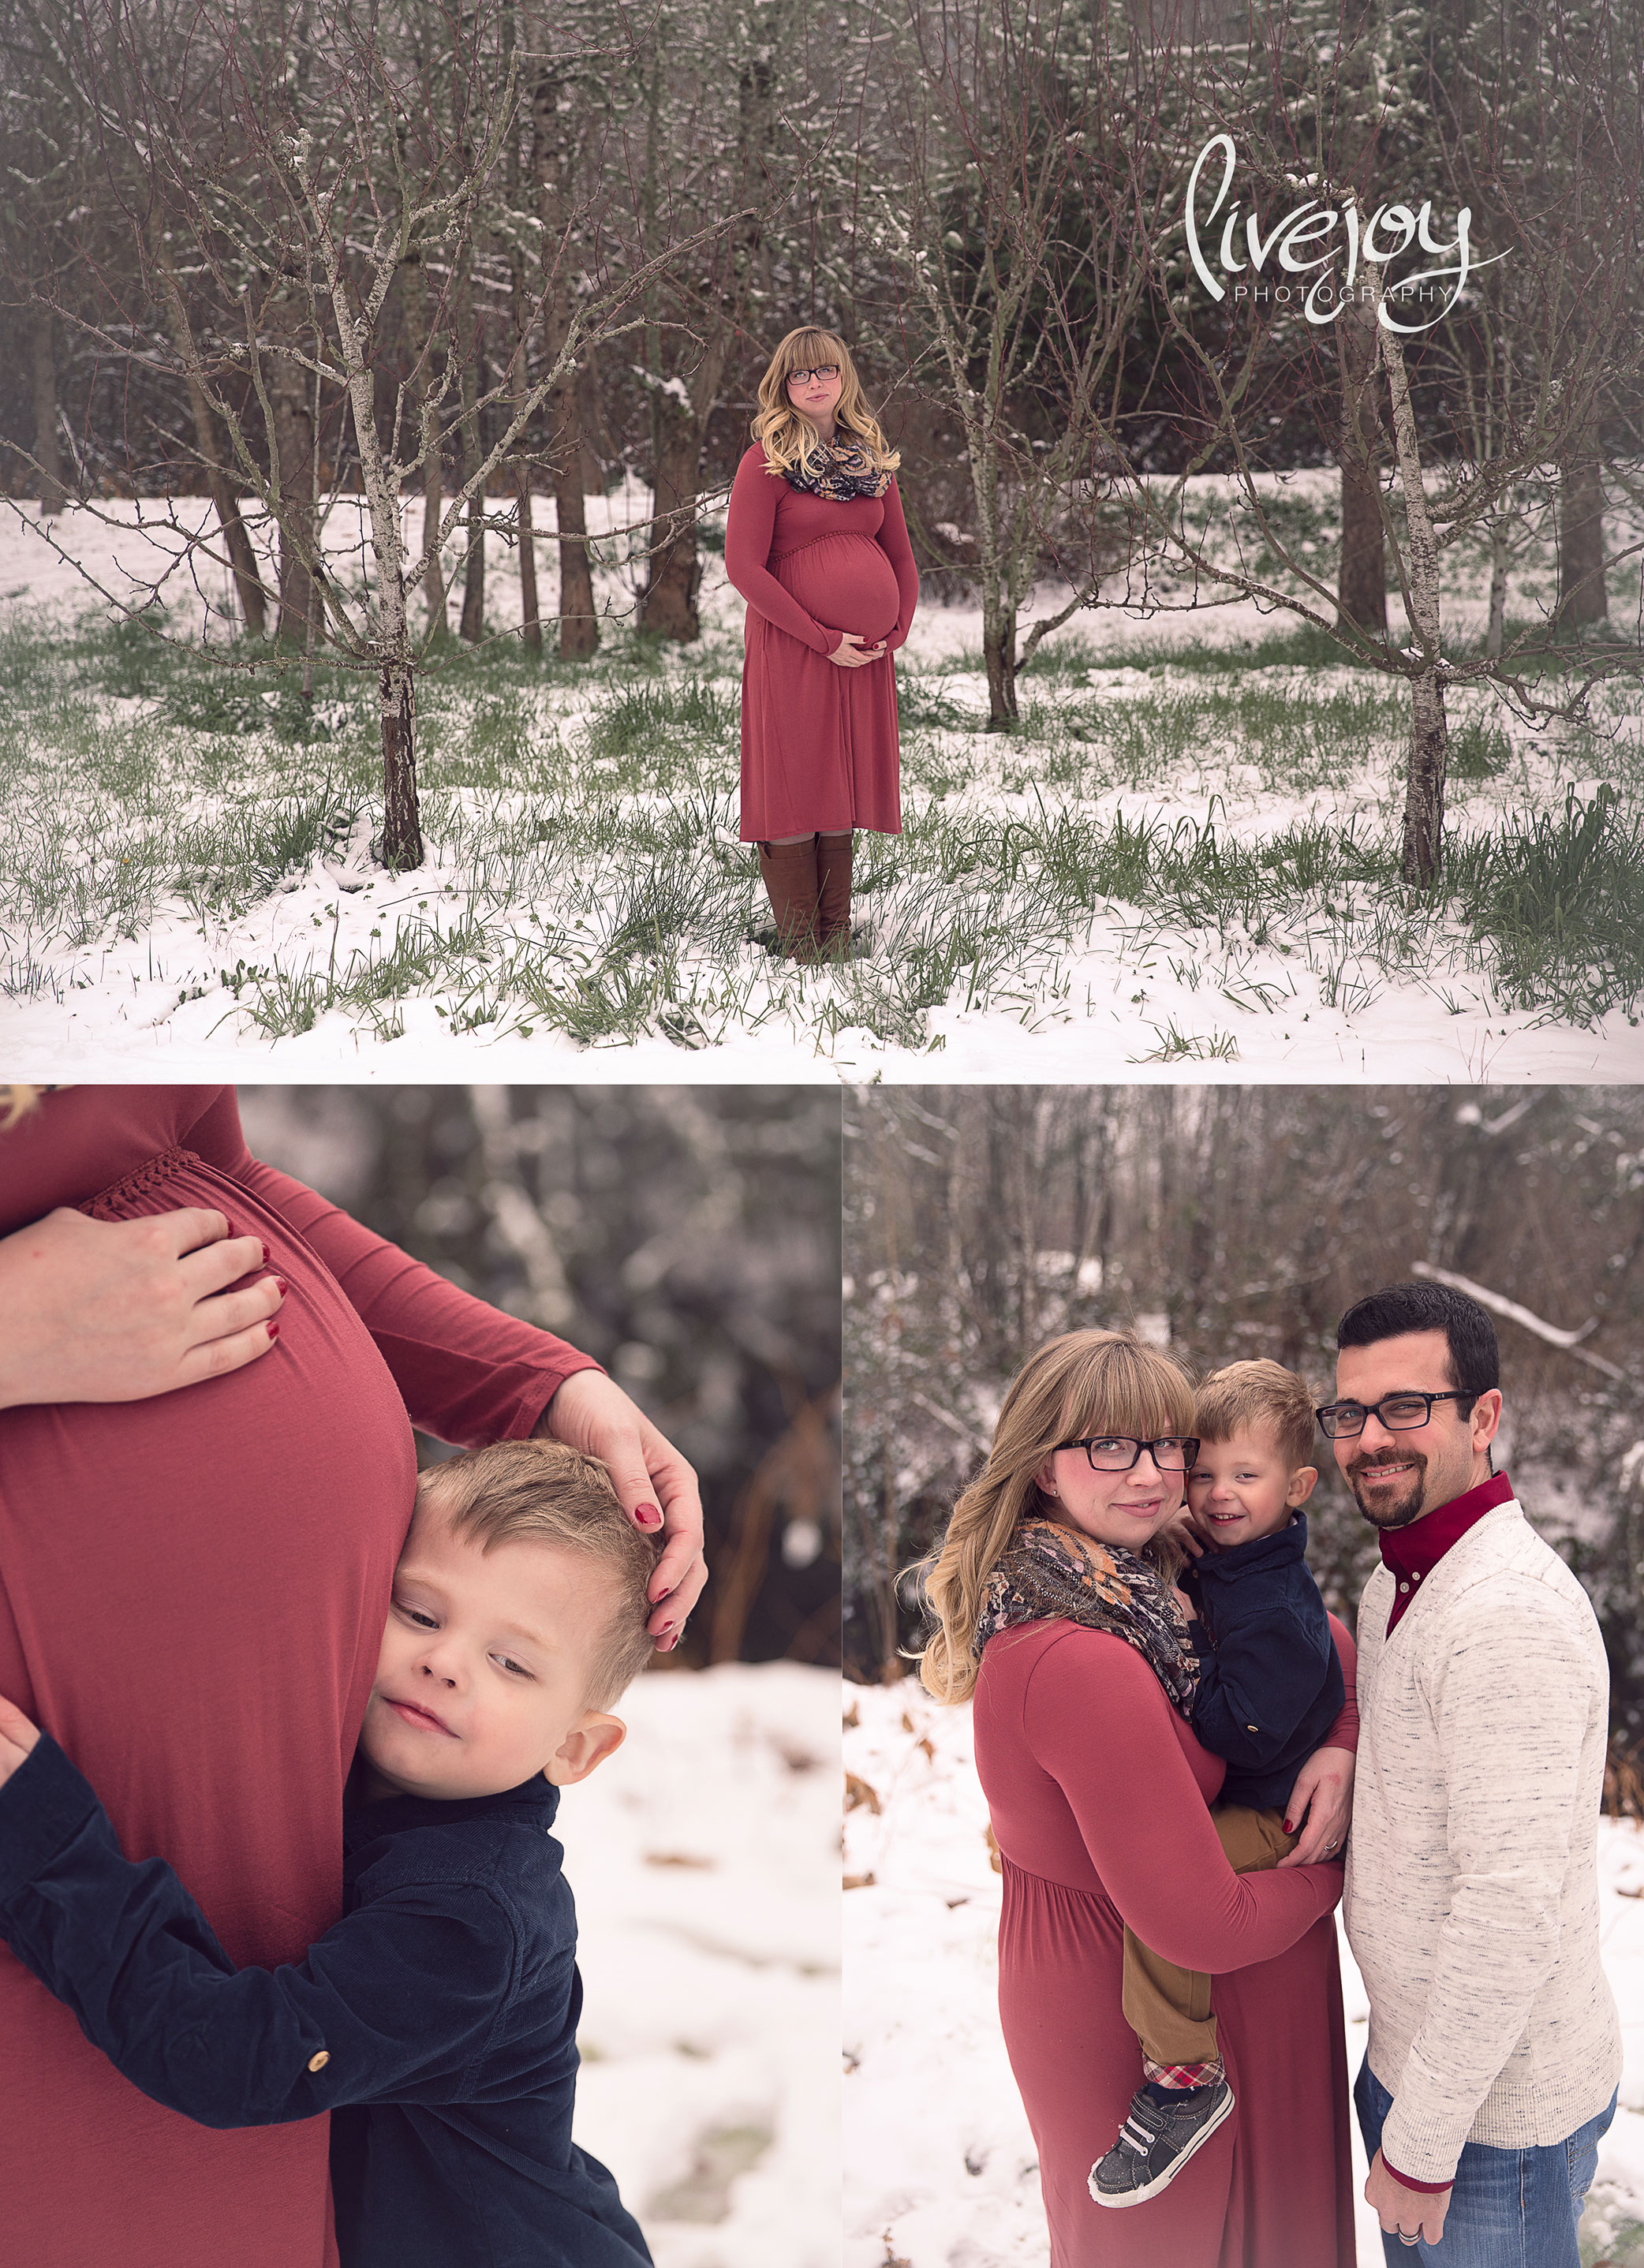 Snow Maternity Photography  | Oregon | LiveJoy Photography